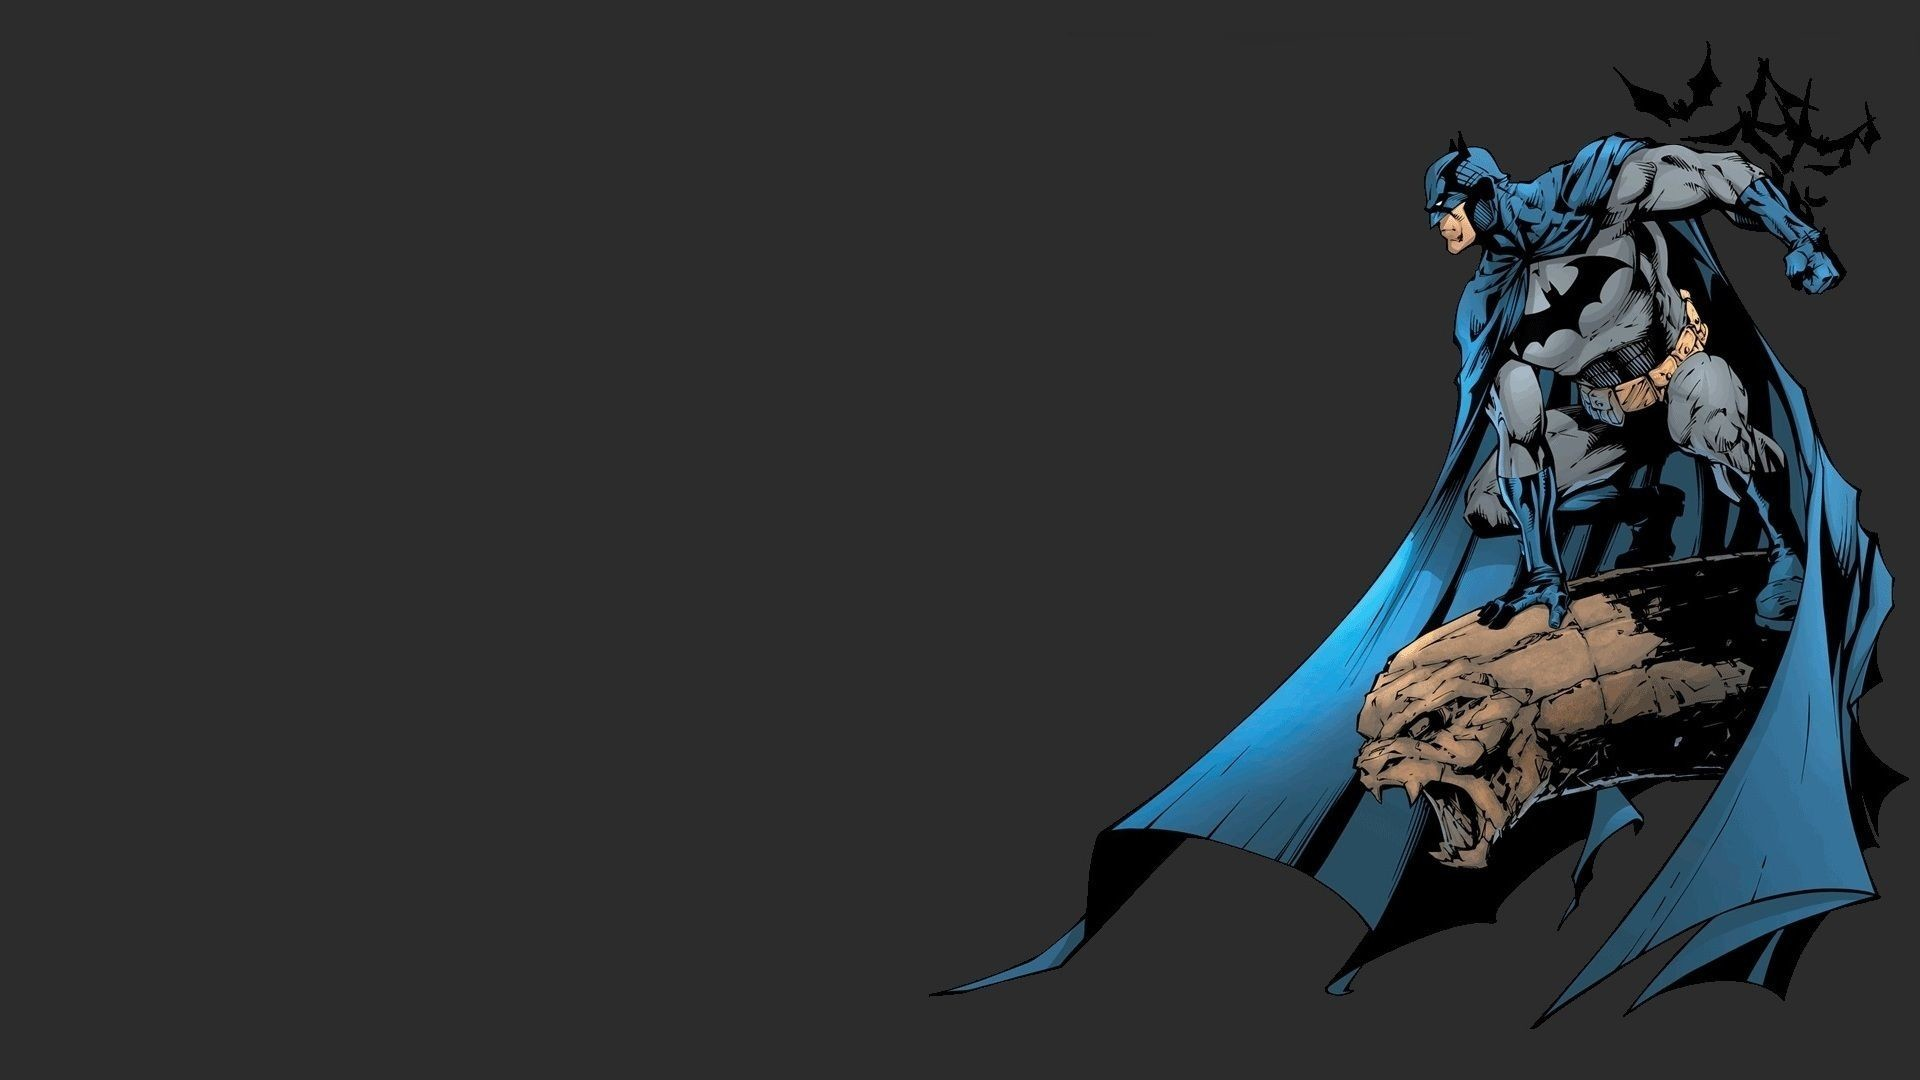 Dc Comics Hd Wallpapers Lovely Jim Lee Batman Wallpaper 1920x1080